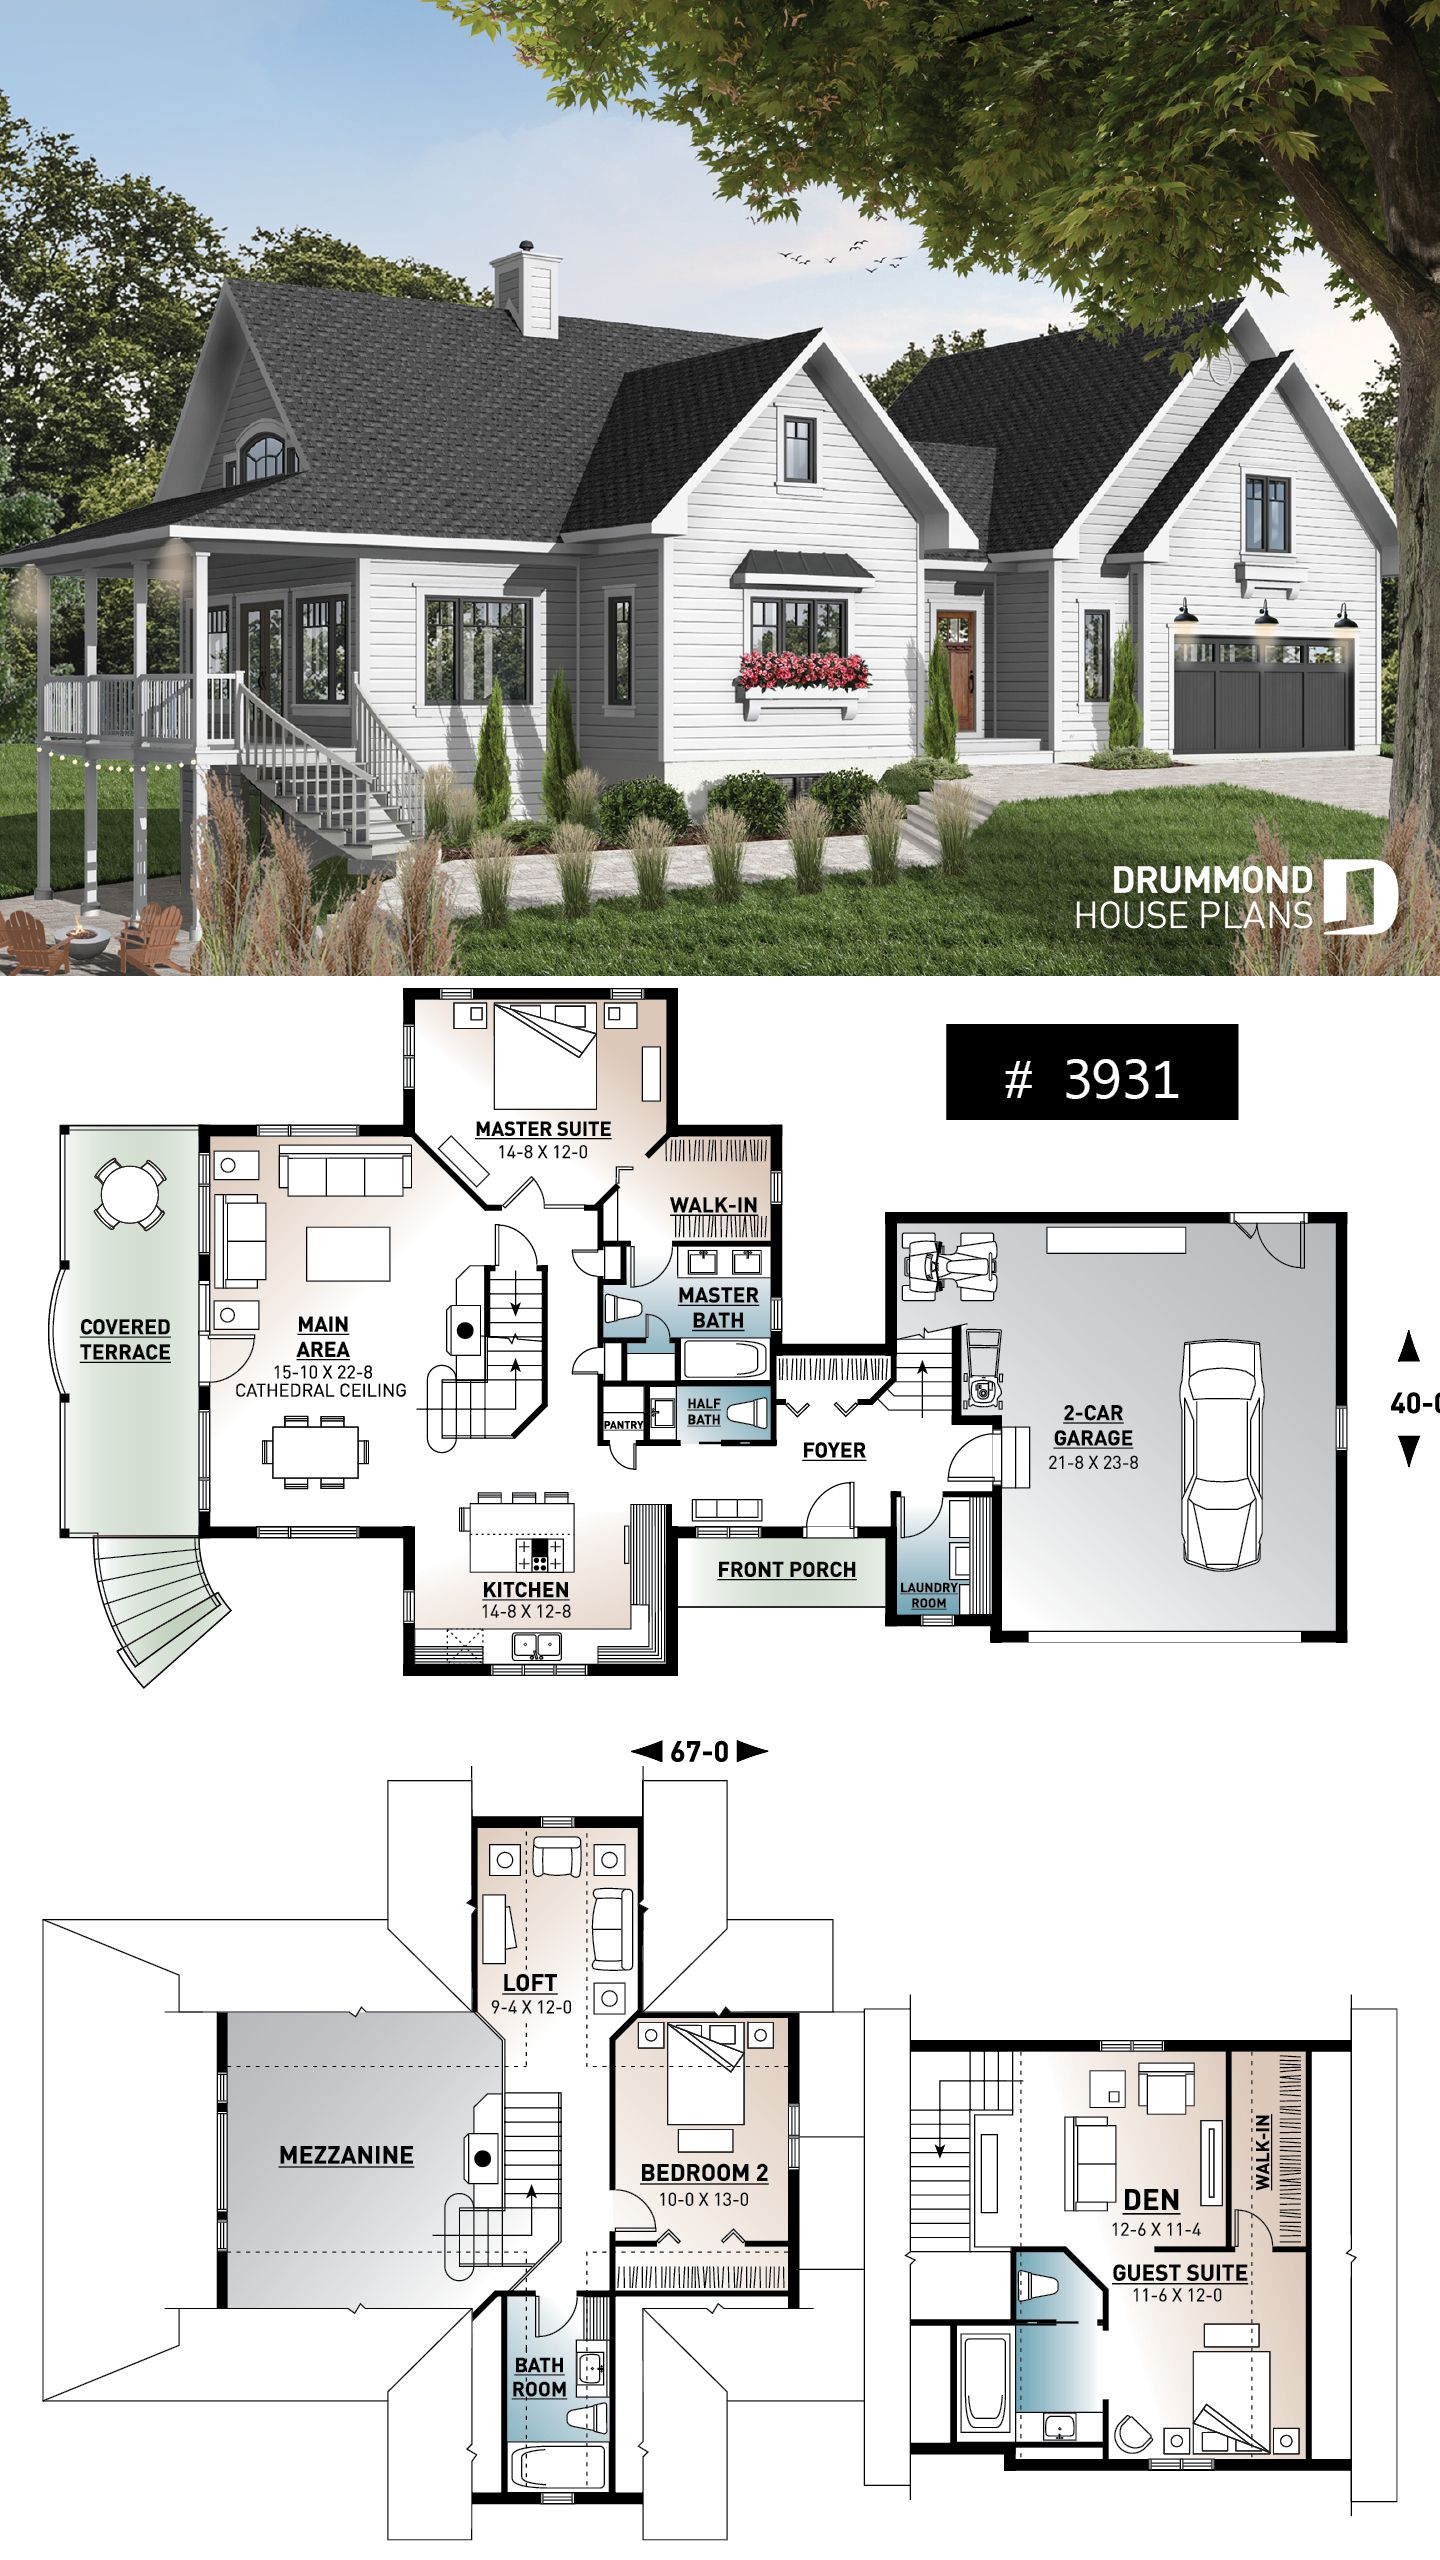 Discover The Plan 3931 The Thatchery Which Will Please You For Its 3 4 Bedrooms And For Its Country Styles House Plans Cottage House Plans Cabin House Plans